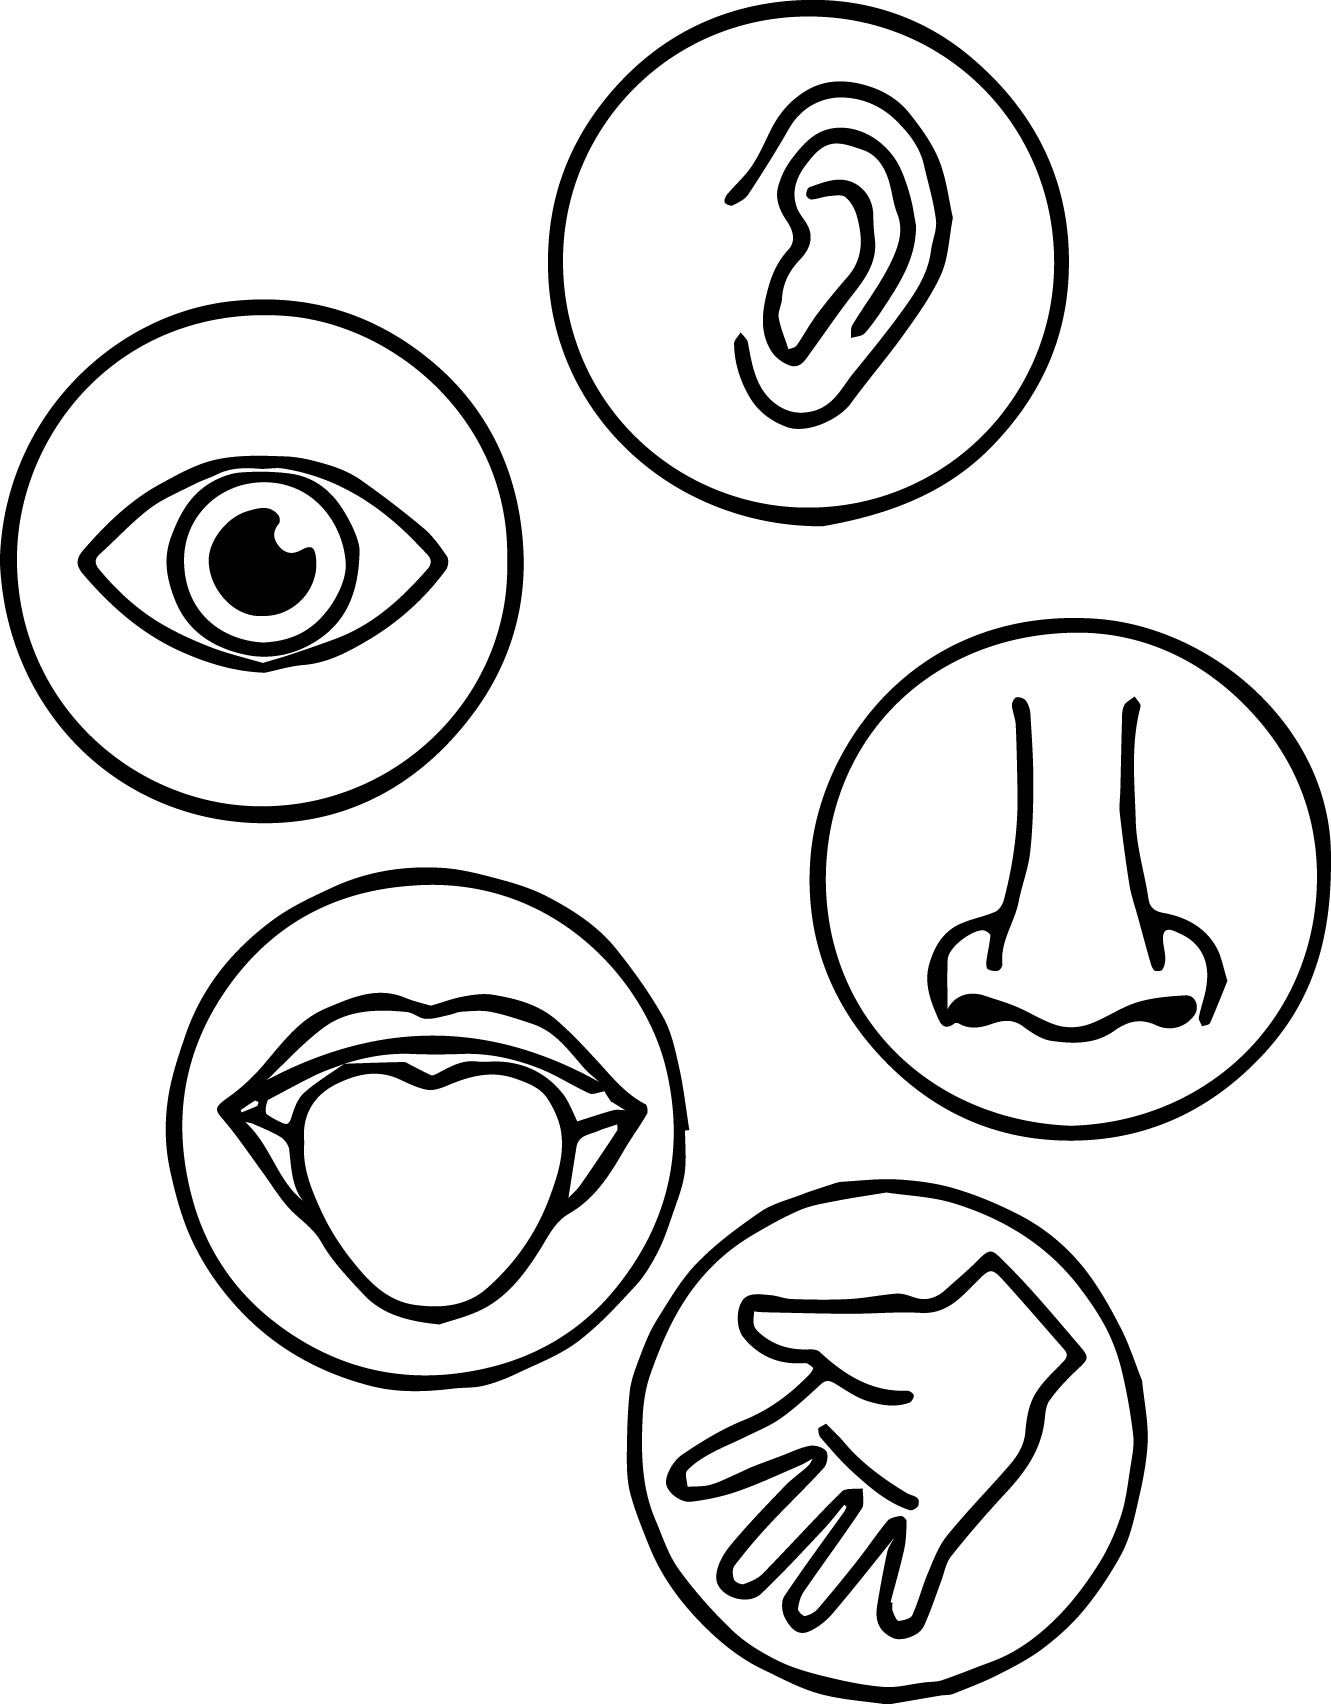 Senses Coloring Page